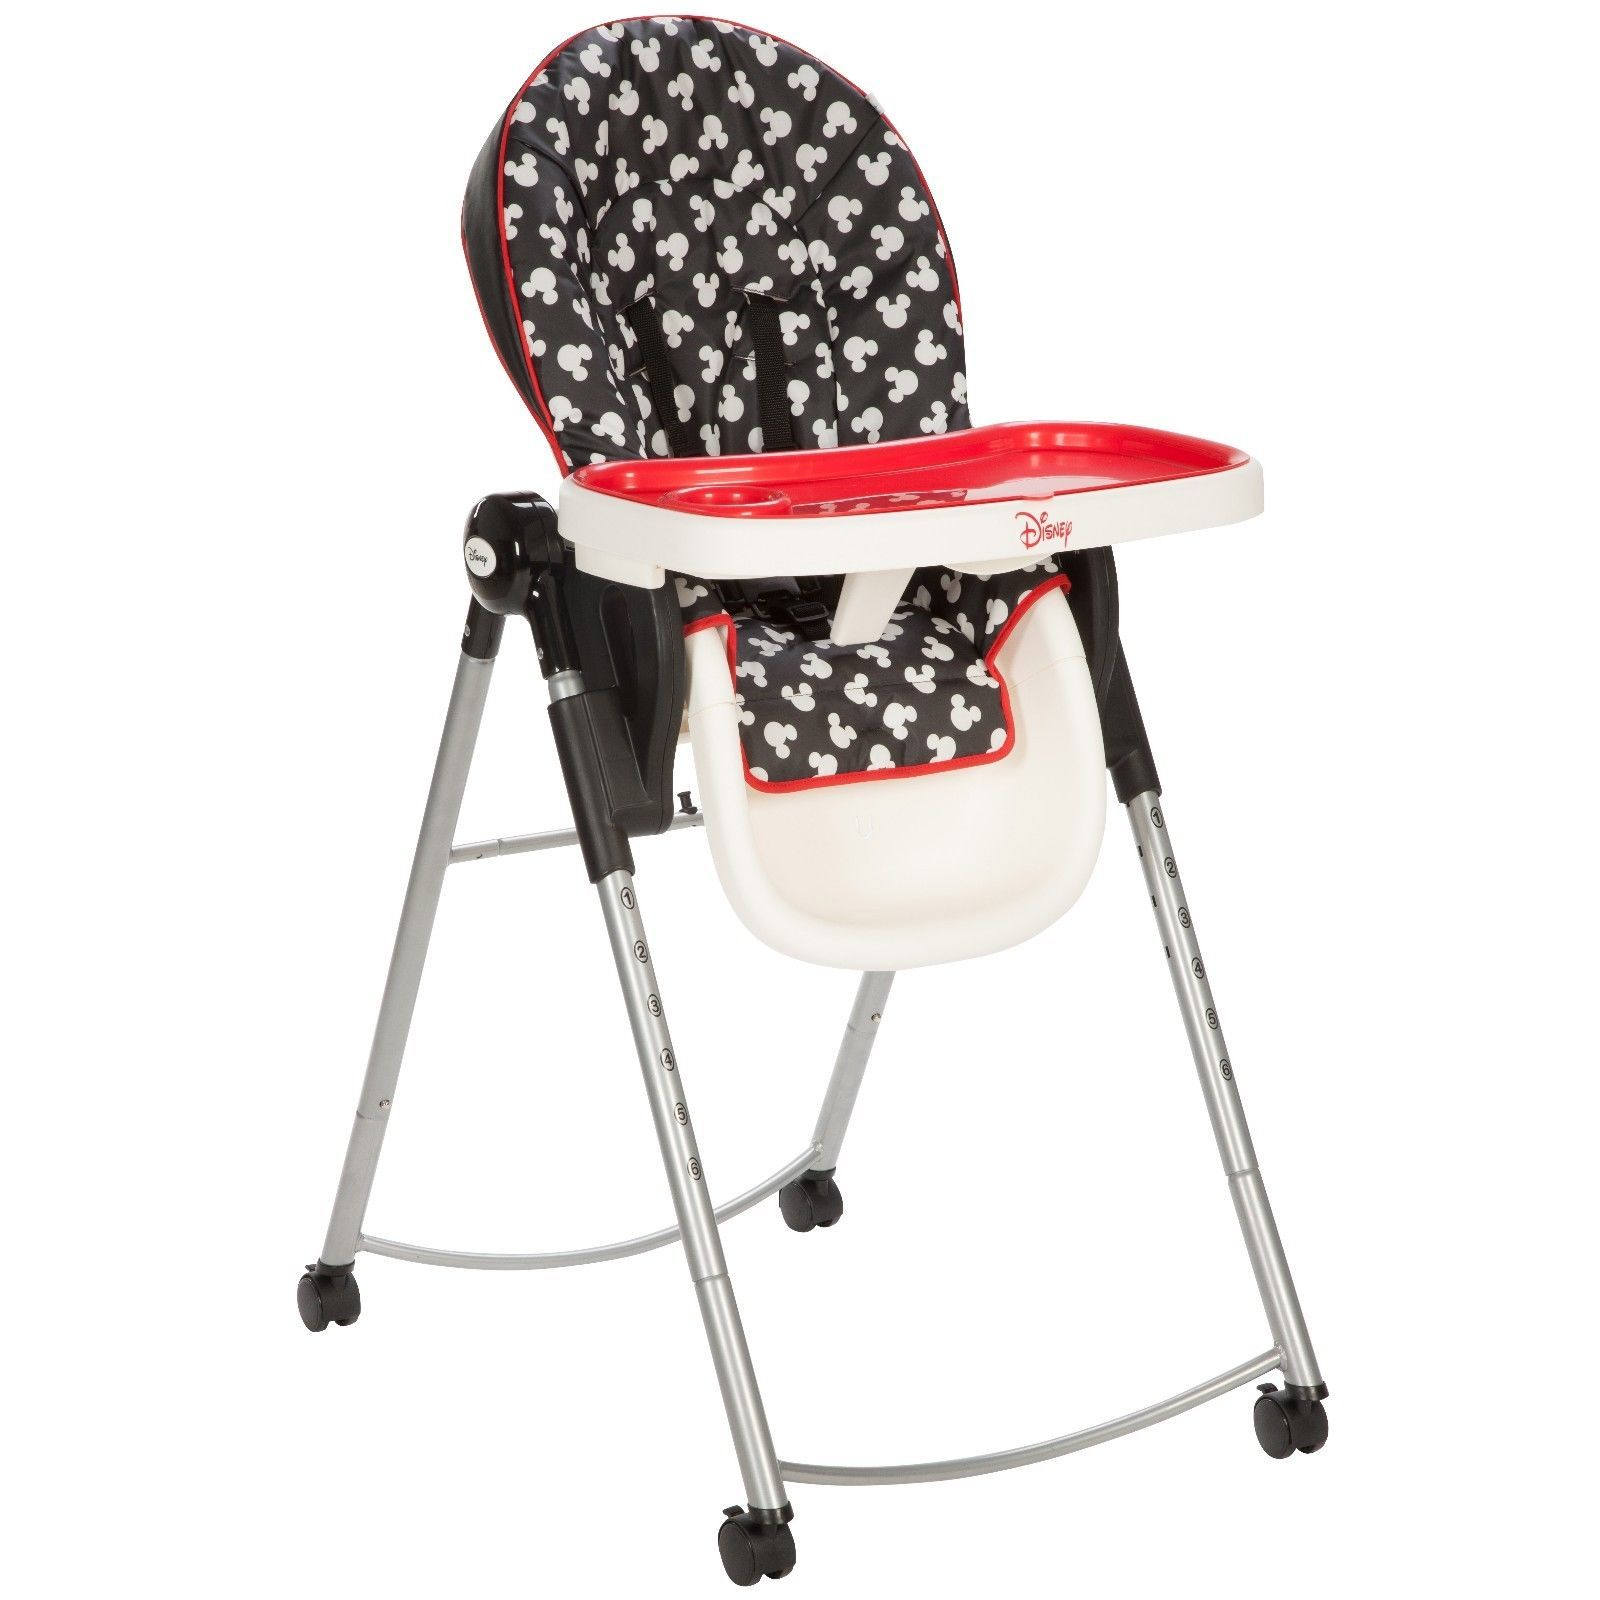 Mickey Mouse Adjustable Feeding High Chair Newborn Infant Toddler